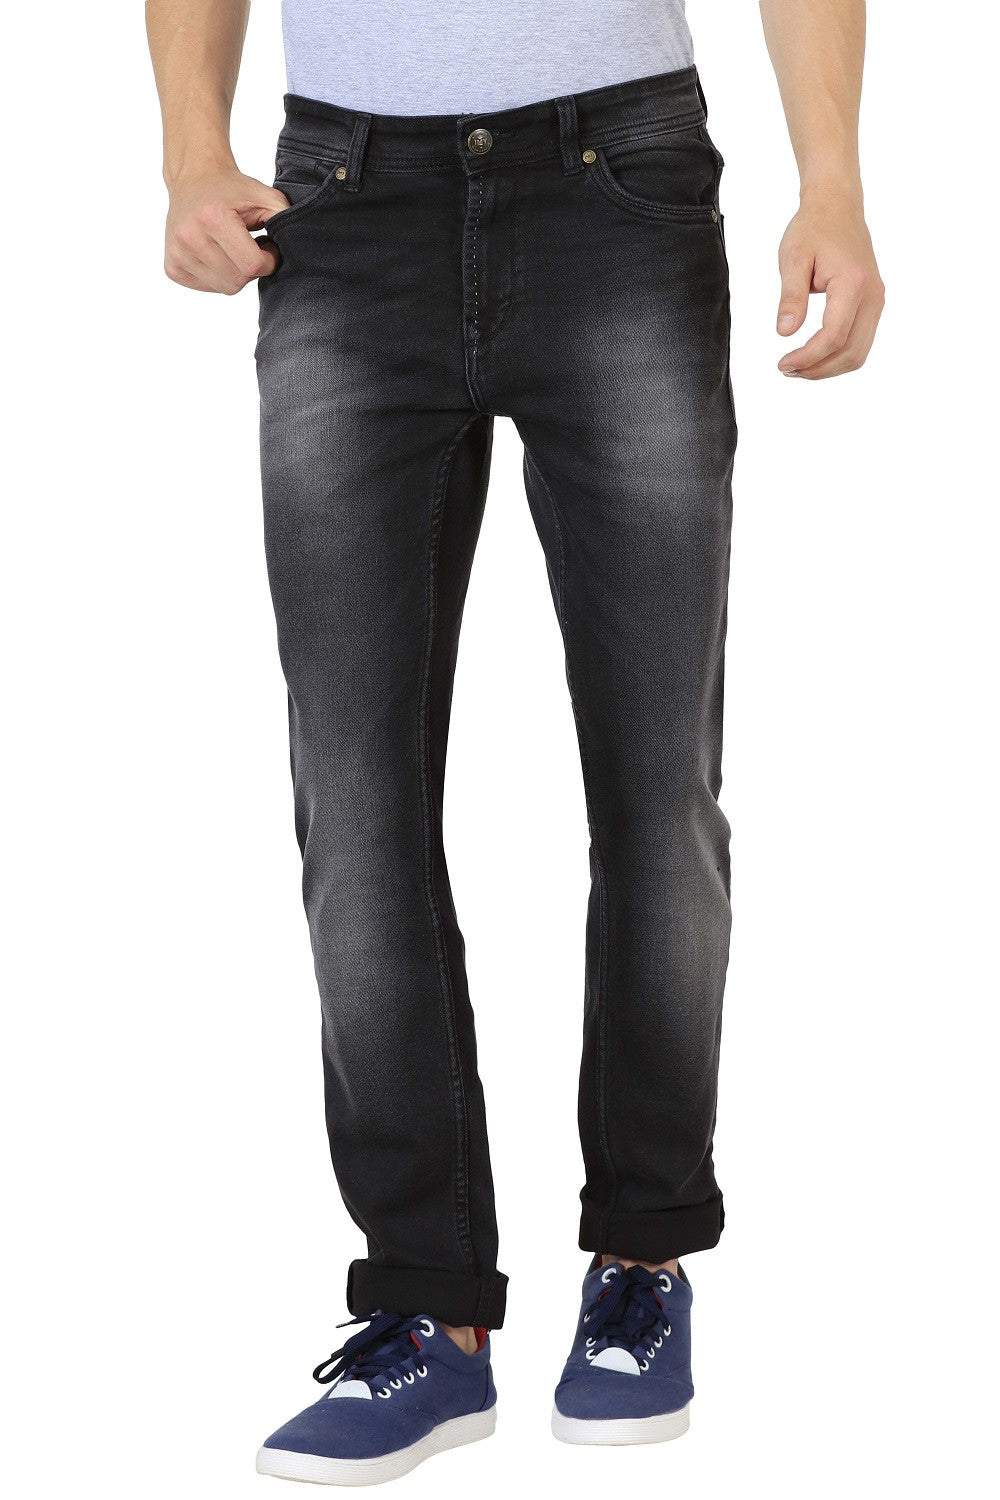 IMYOUNG Faded Black Slim Fit Jeans